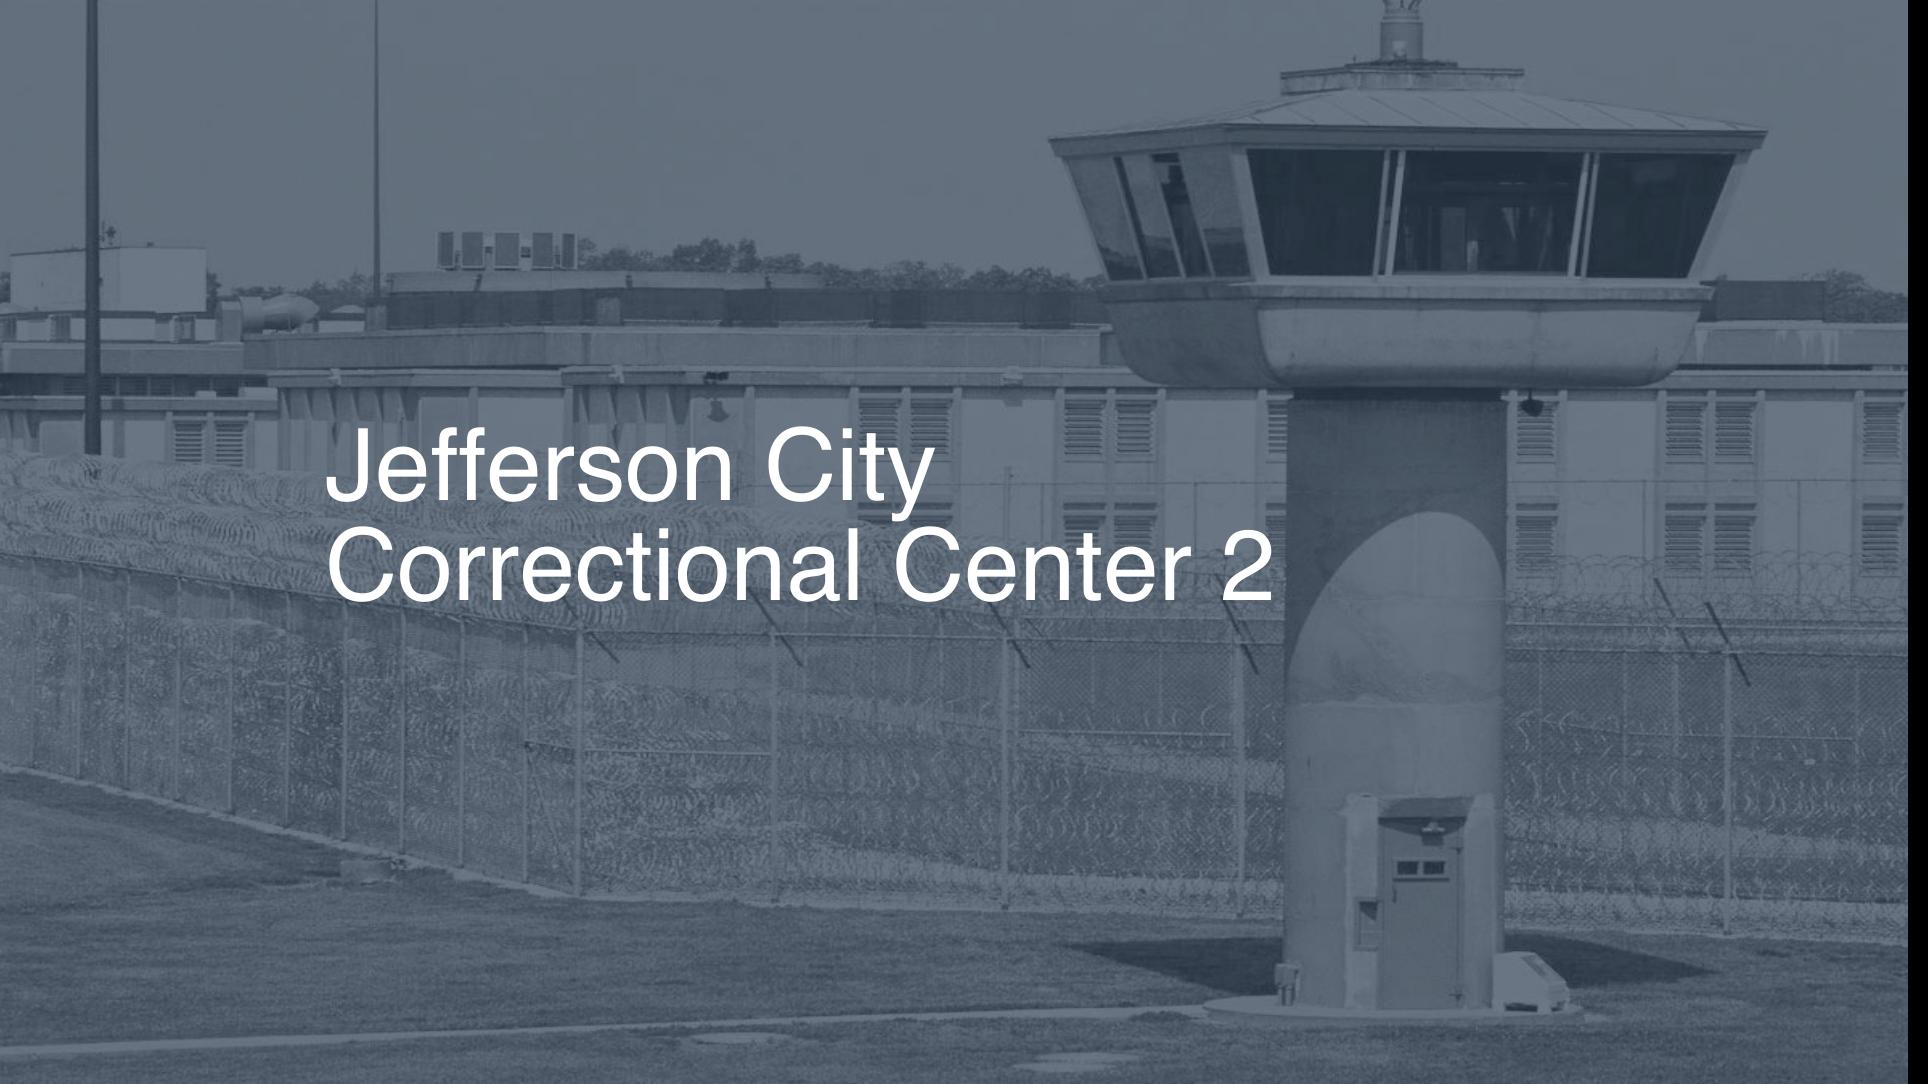 Jefferson City Correctional Center Inmate Search, Lookup & Services